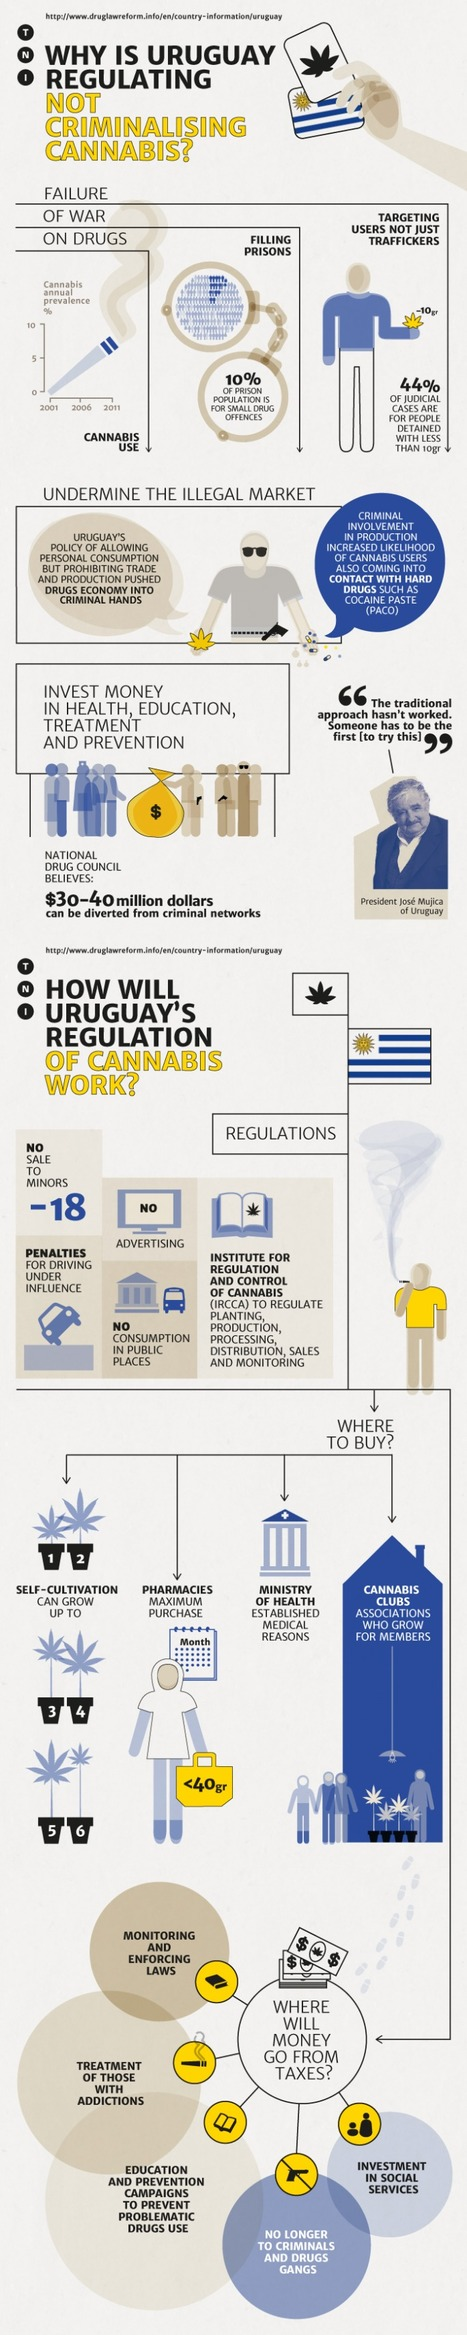 Drugs and Democracy | Uruguay's historic cannabis regulation explained | Cannabis News | Scoop.it